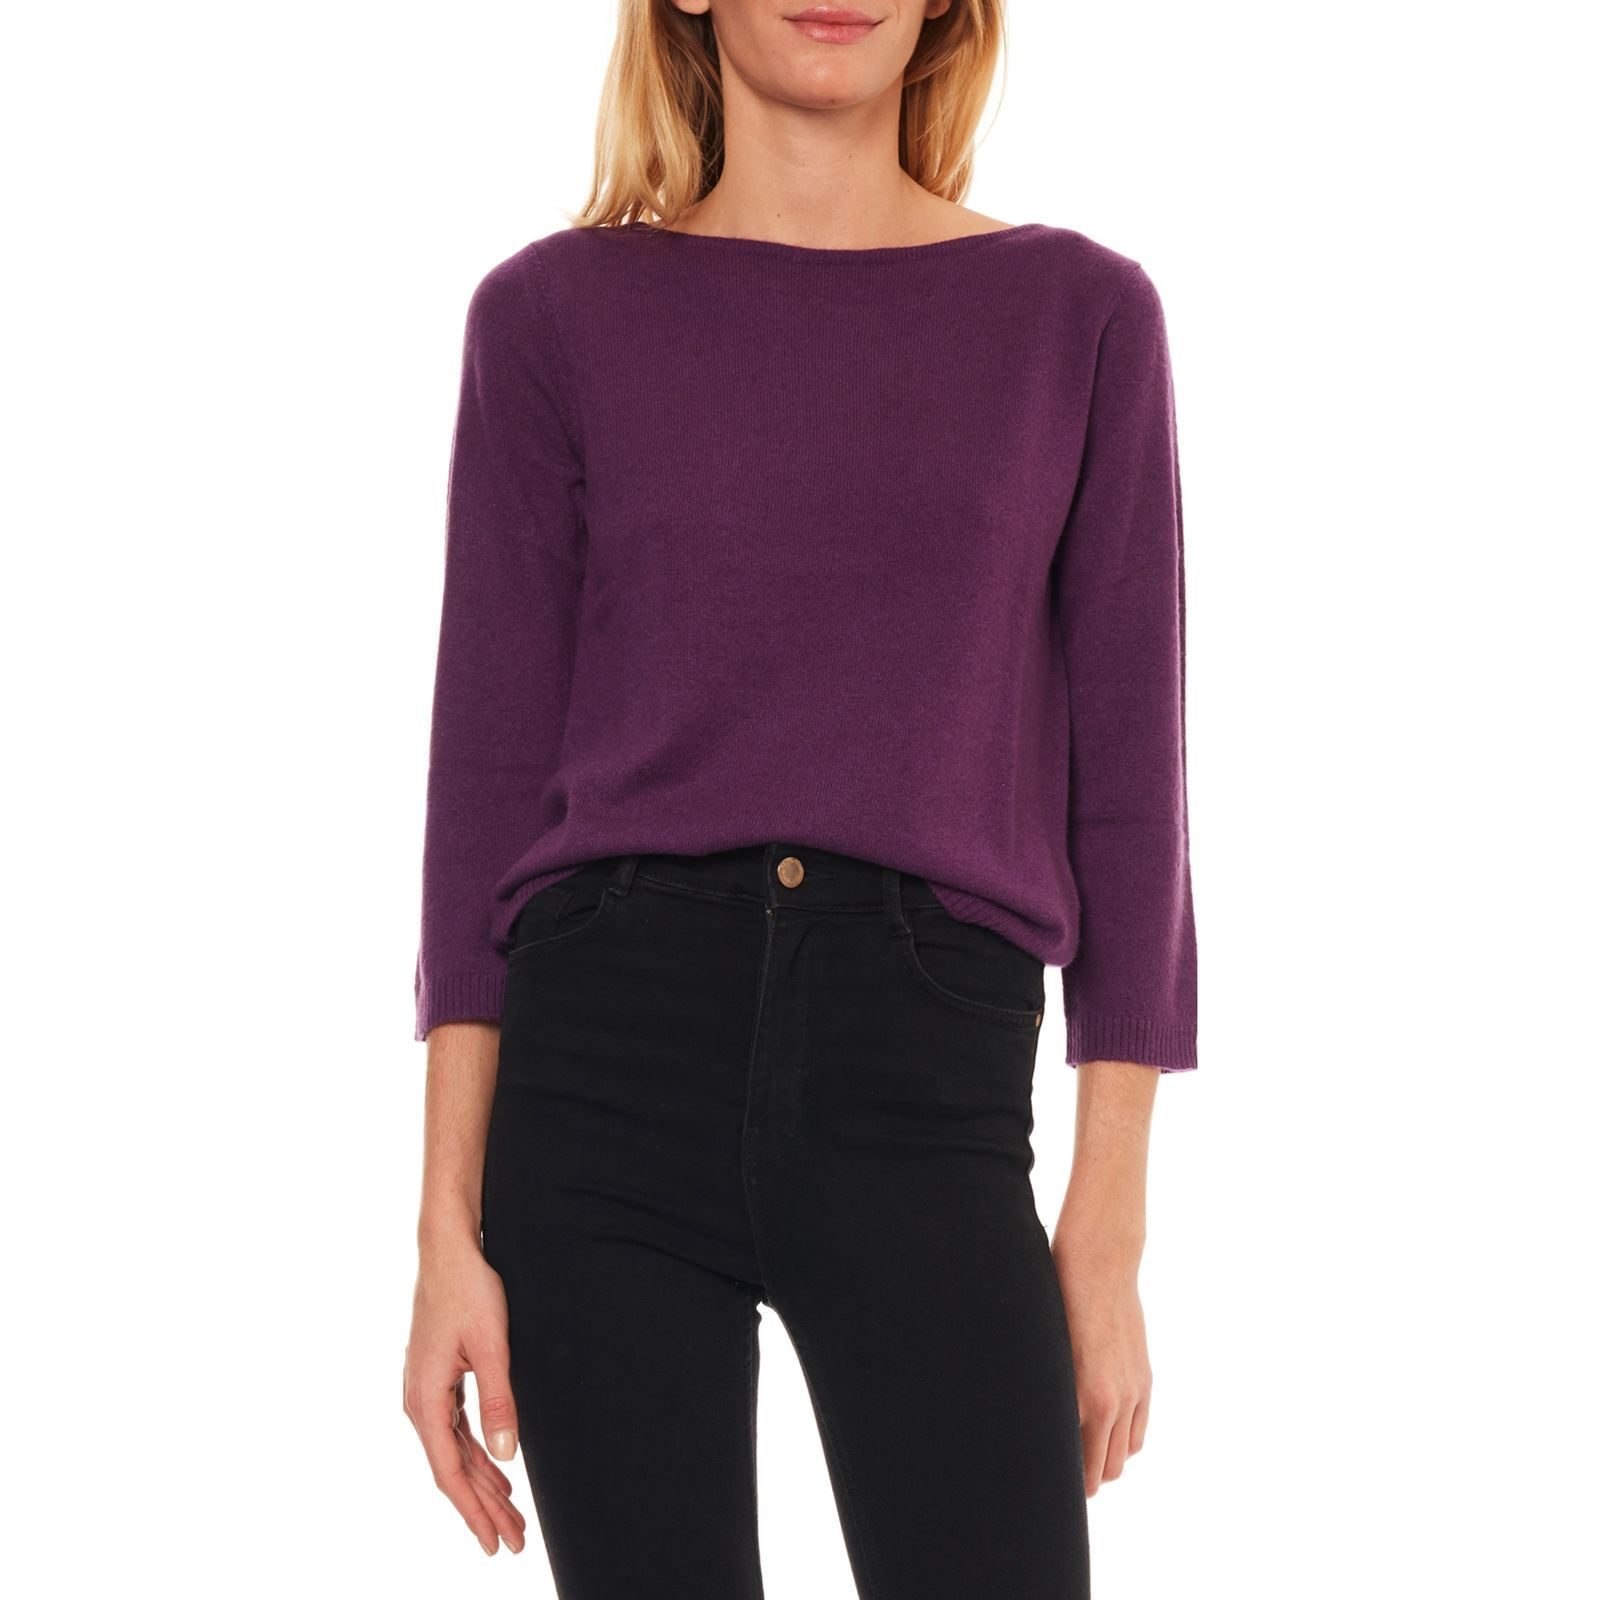 36d9f1efd3a Caroll Pull 100% cachemire - violet